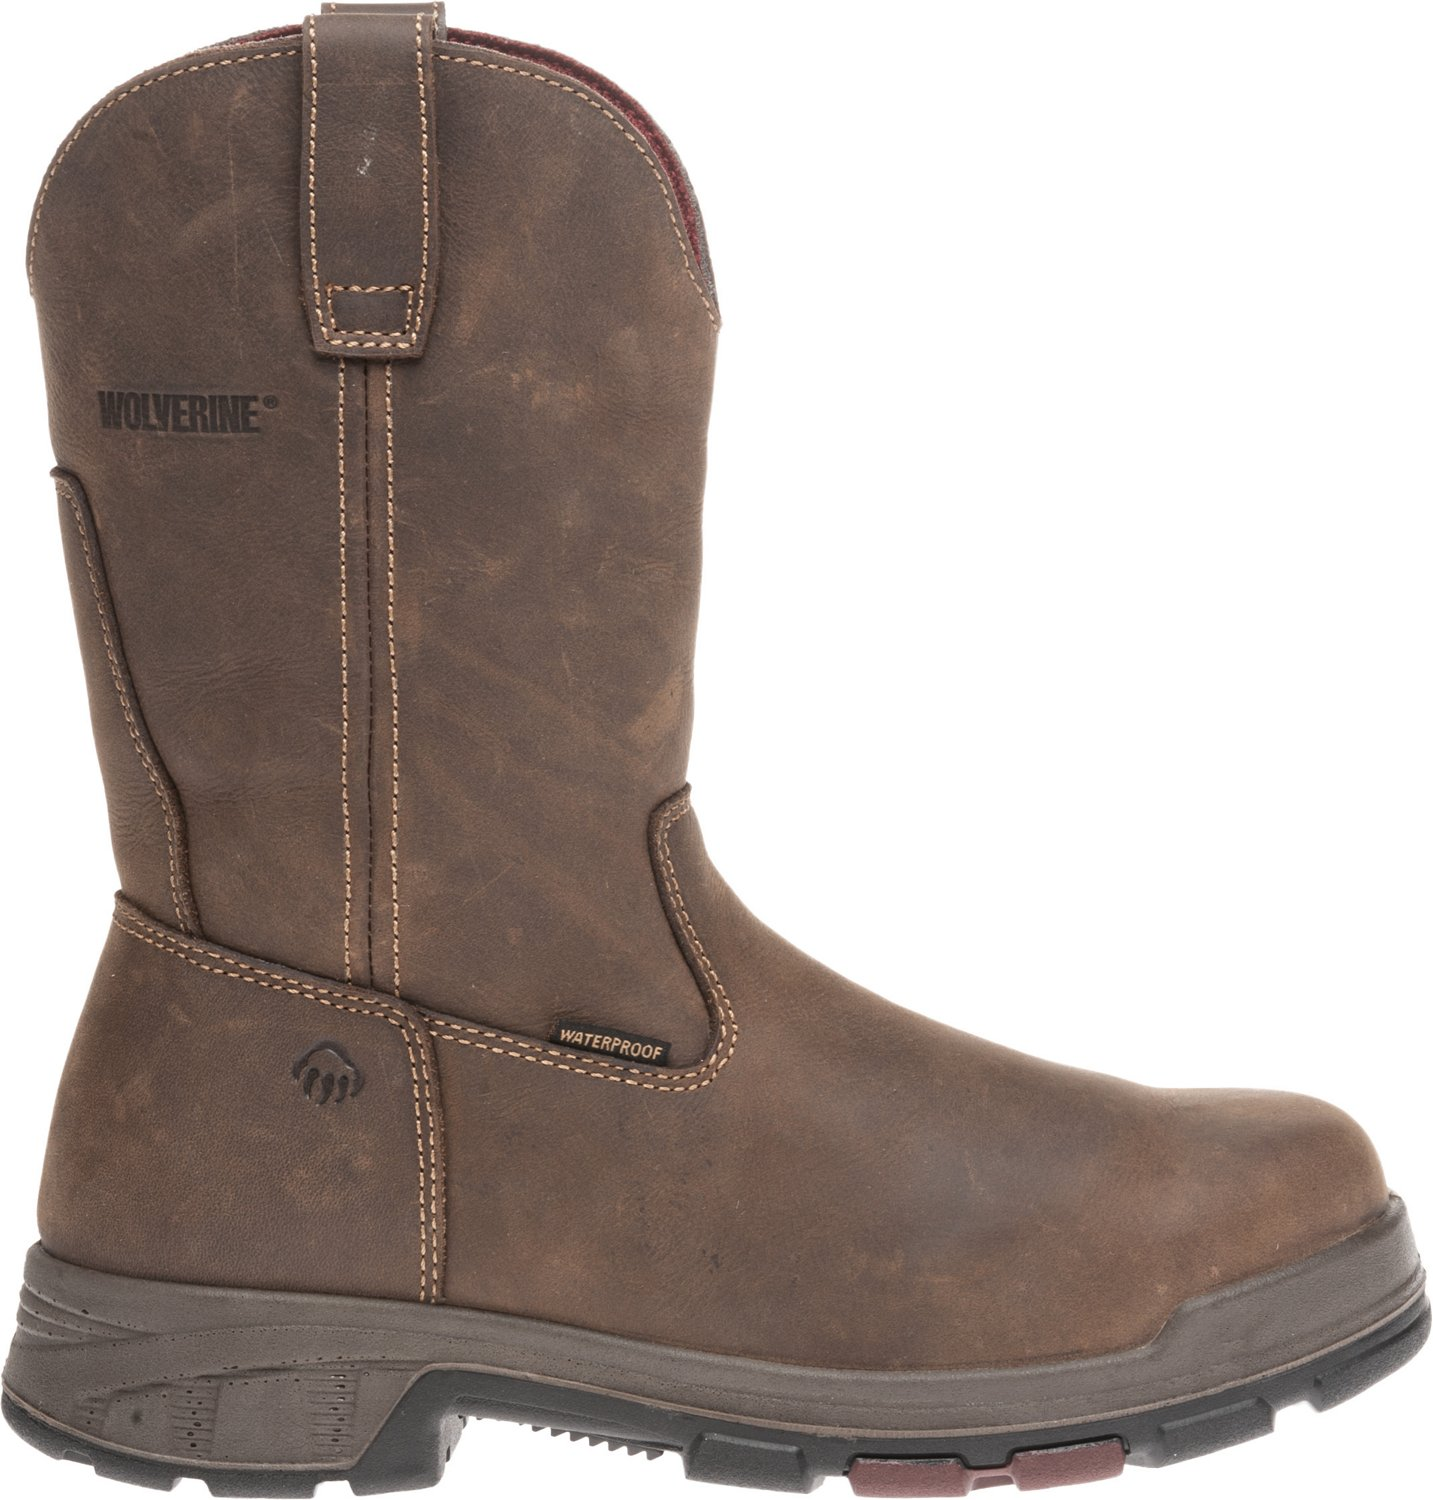 717481b4a30 Wolverine Men's Cabor EPX EH Composite Toe Wellington Work Boots